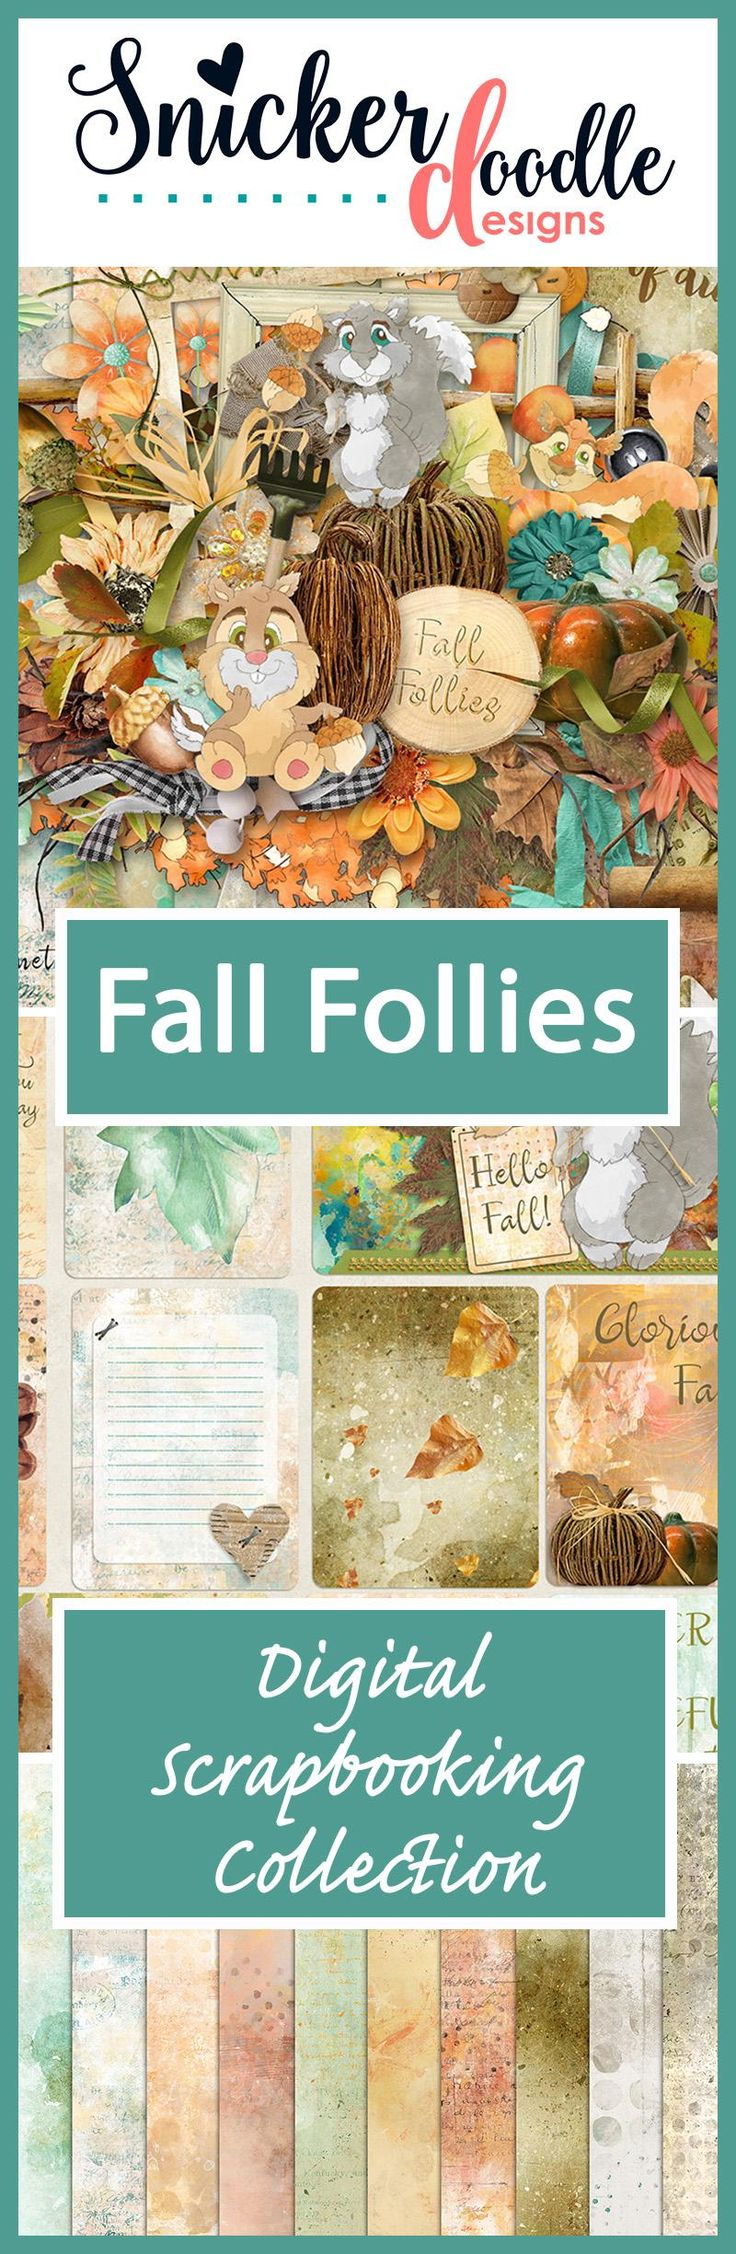 "Capture the whimsey of the season, while adding rustic charm to your digital scrapbook pages, when you use ""Fall Follies"" to scrap your memories. #SnickerdoodleDesigns  #digitalscrapbooking #FallFollies  http://www.thedigichick.com/shop/search.php?mode=search&page=1"